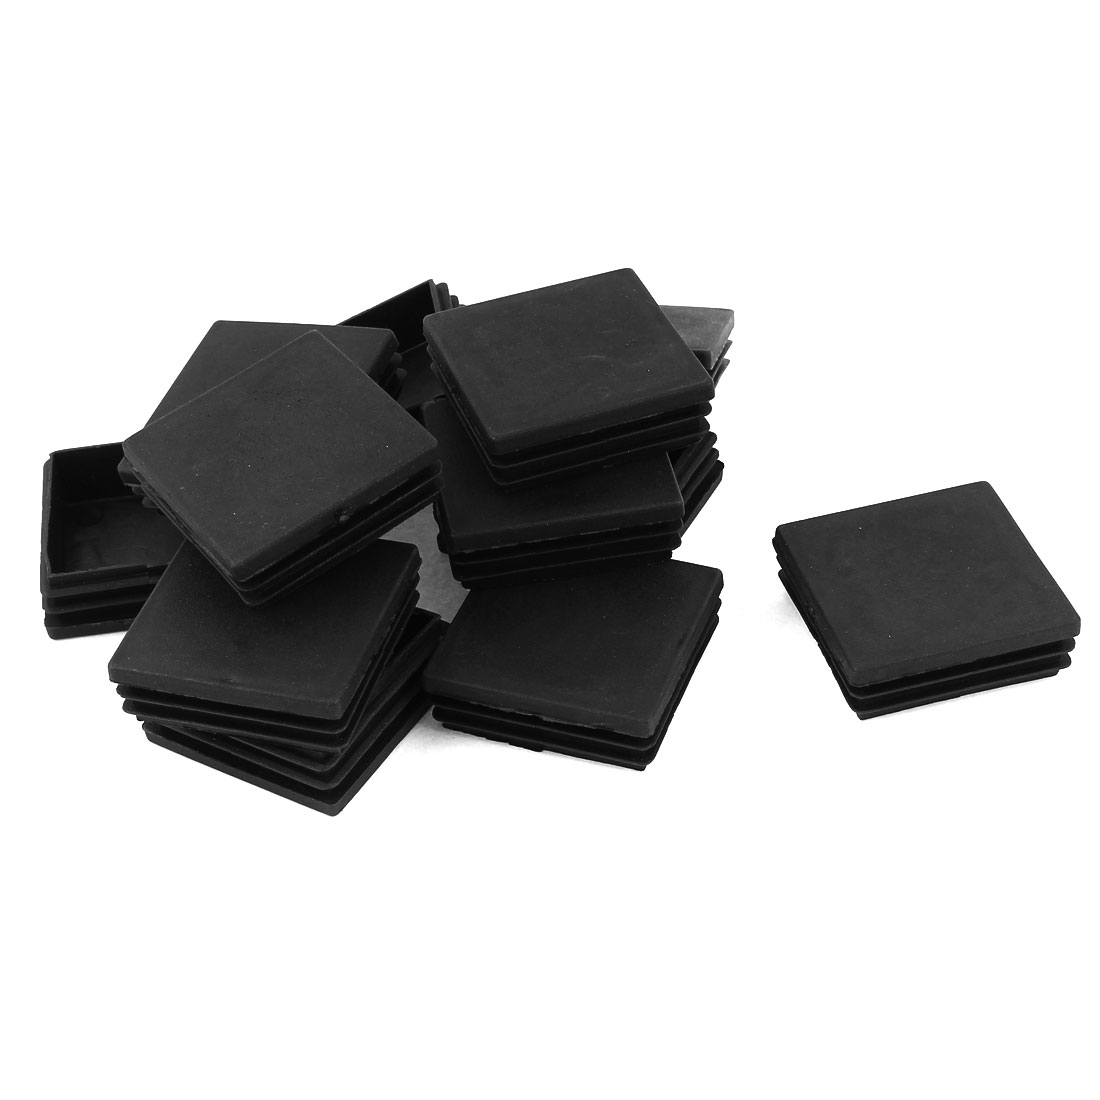 12 Pcs Black Plastic Square Blanking End Caps Tubing Tube Inserts 60mm x 60mm